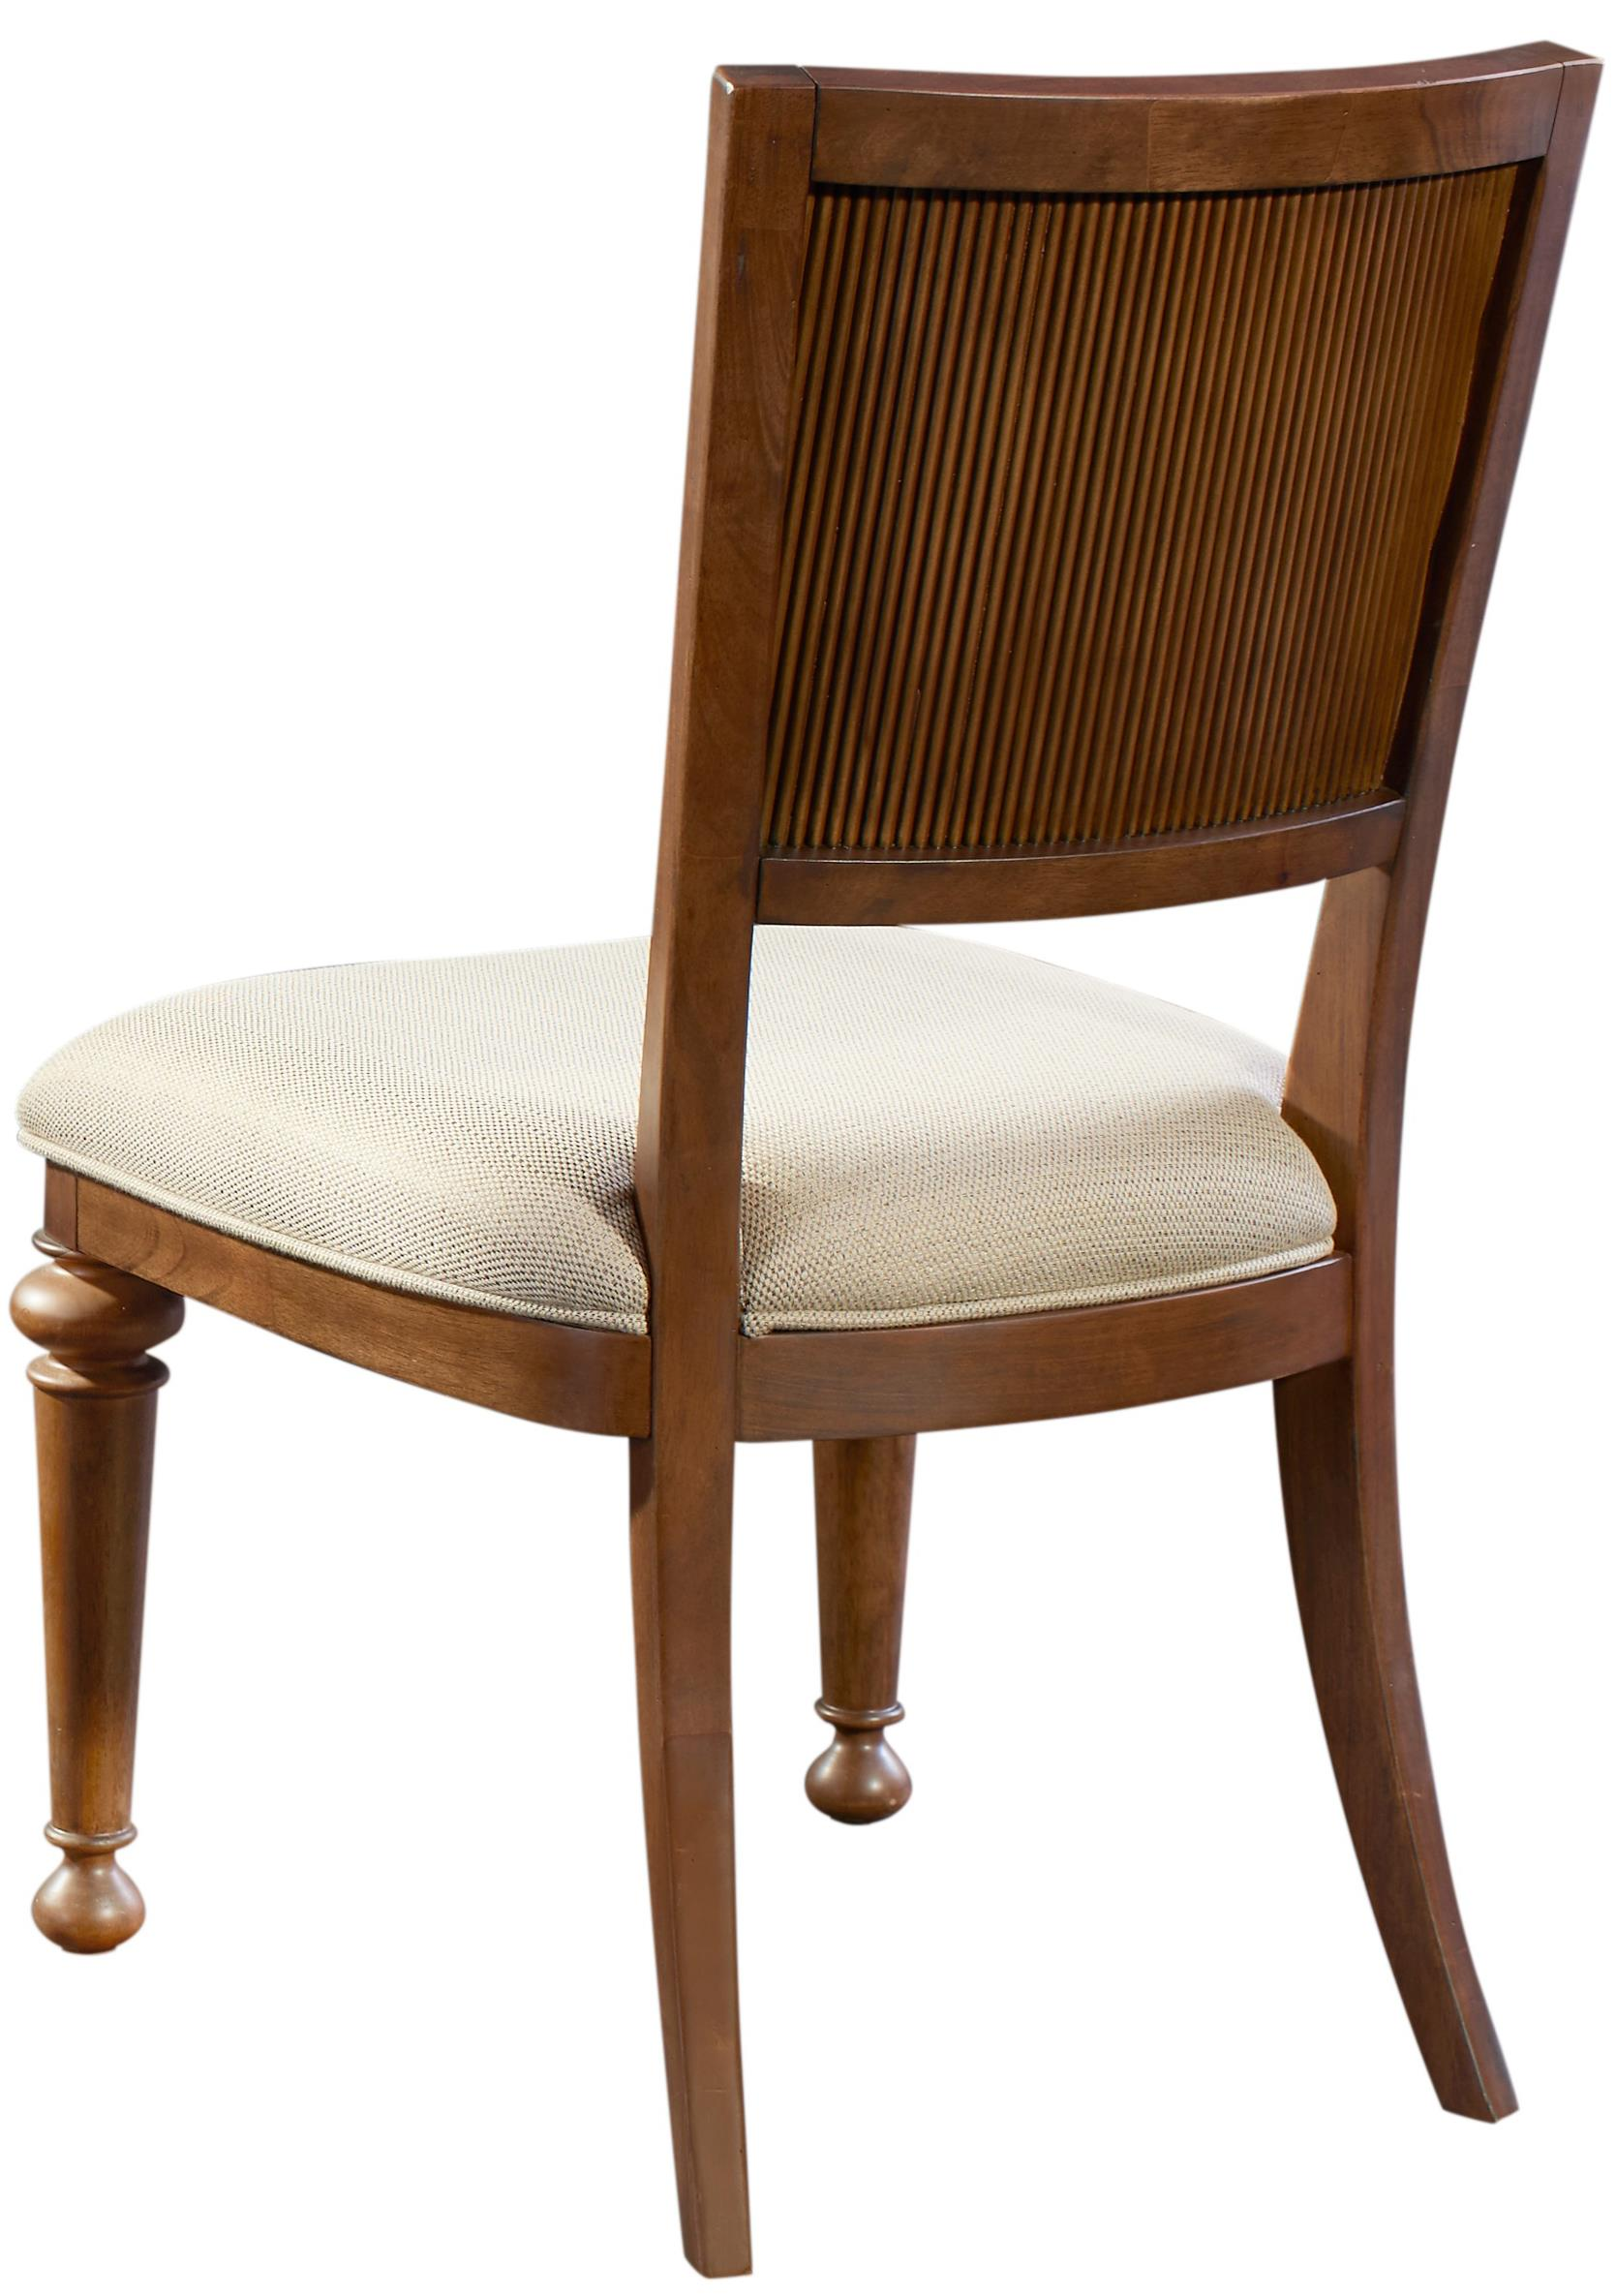 Broyhill Furniture Cascade Upholstered Side Chair - Item Number: 4940-583